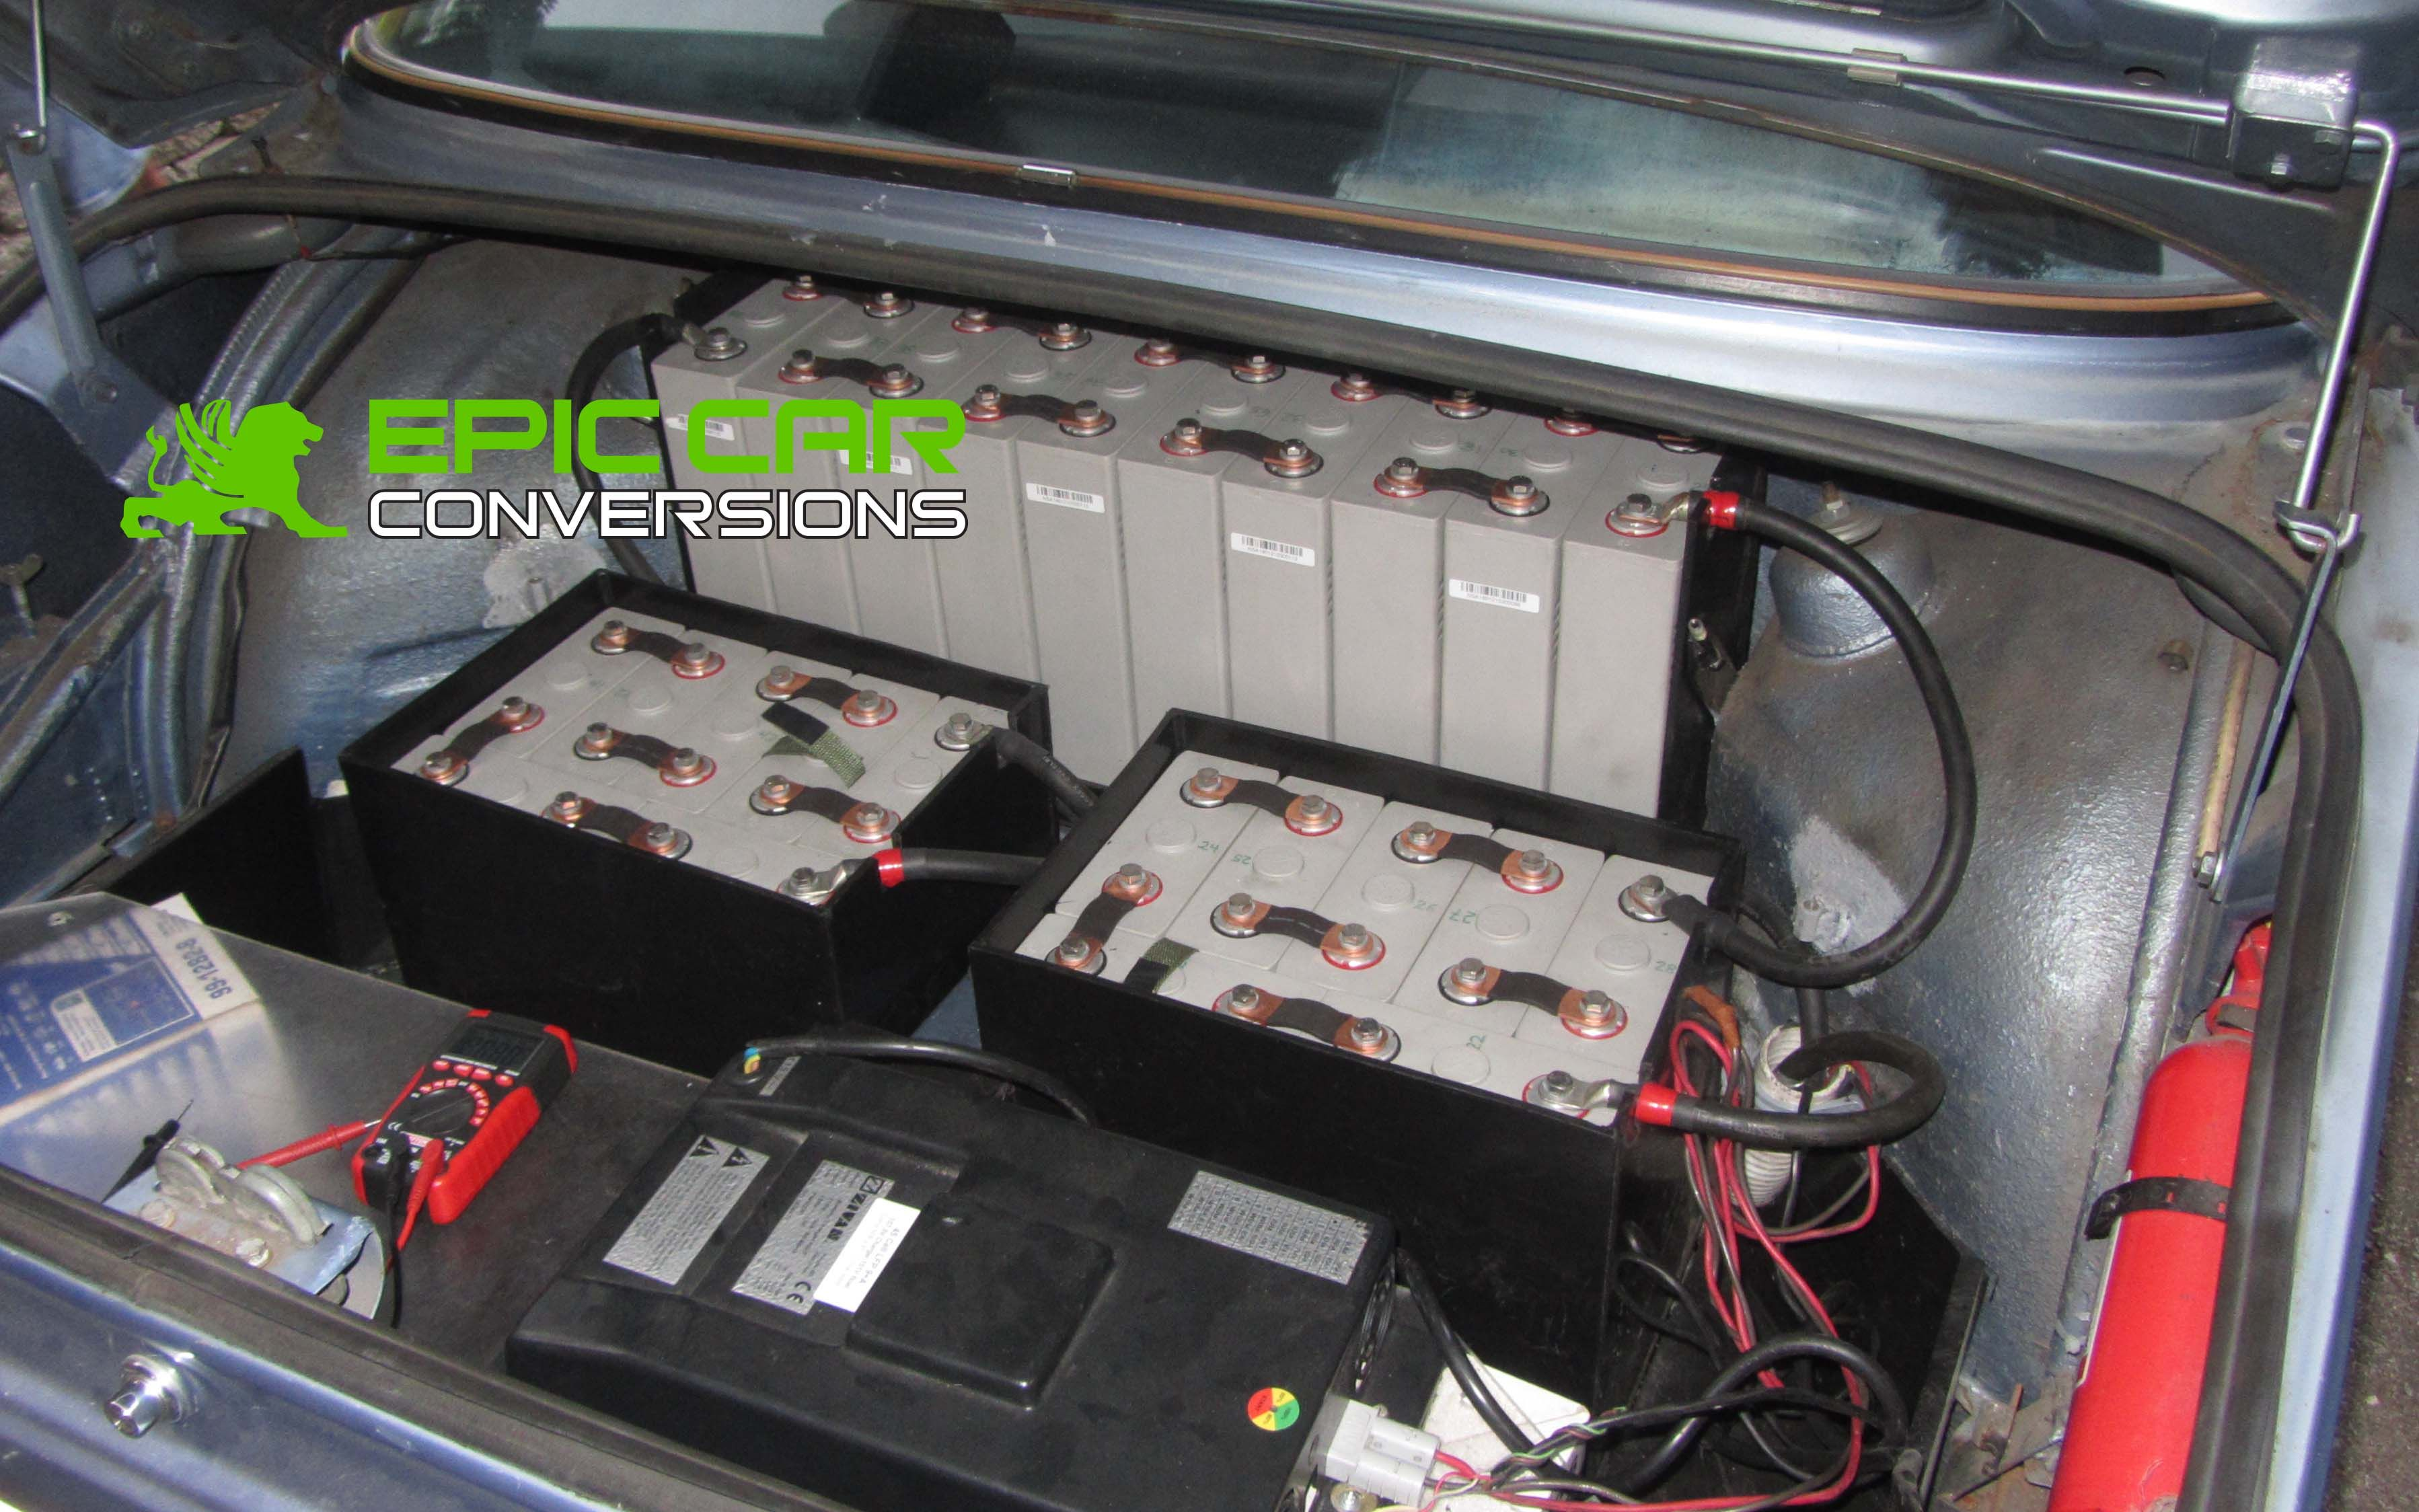 Bmw 2002 Electric Car Conversion Ev Electric Vehicle Batteries Epiccarconversions Com Electric Car Conversion Diy Electric Car Electric Cars